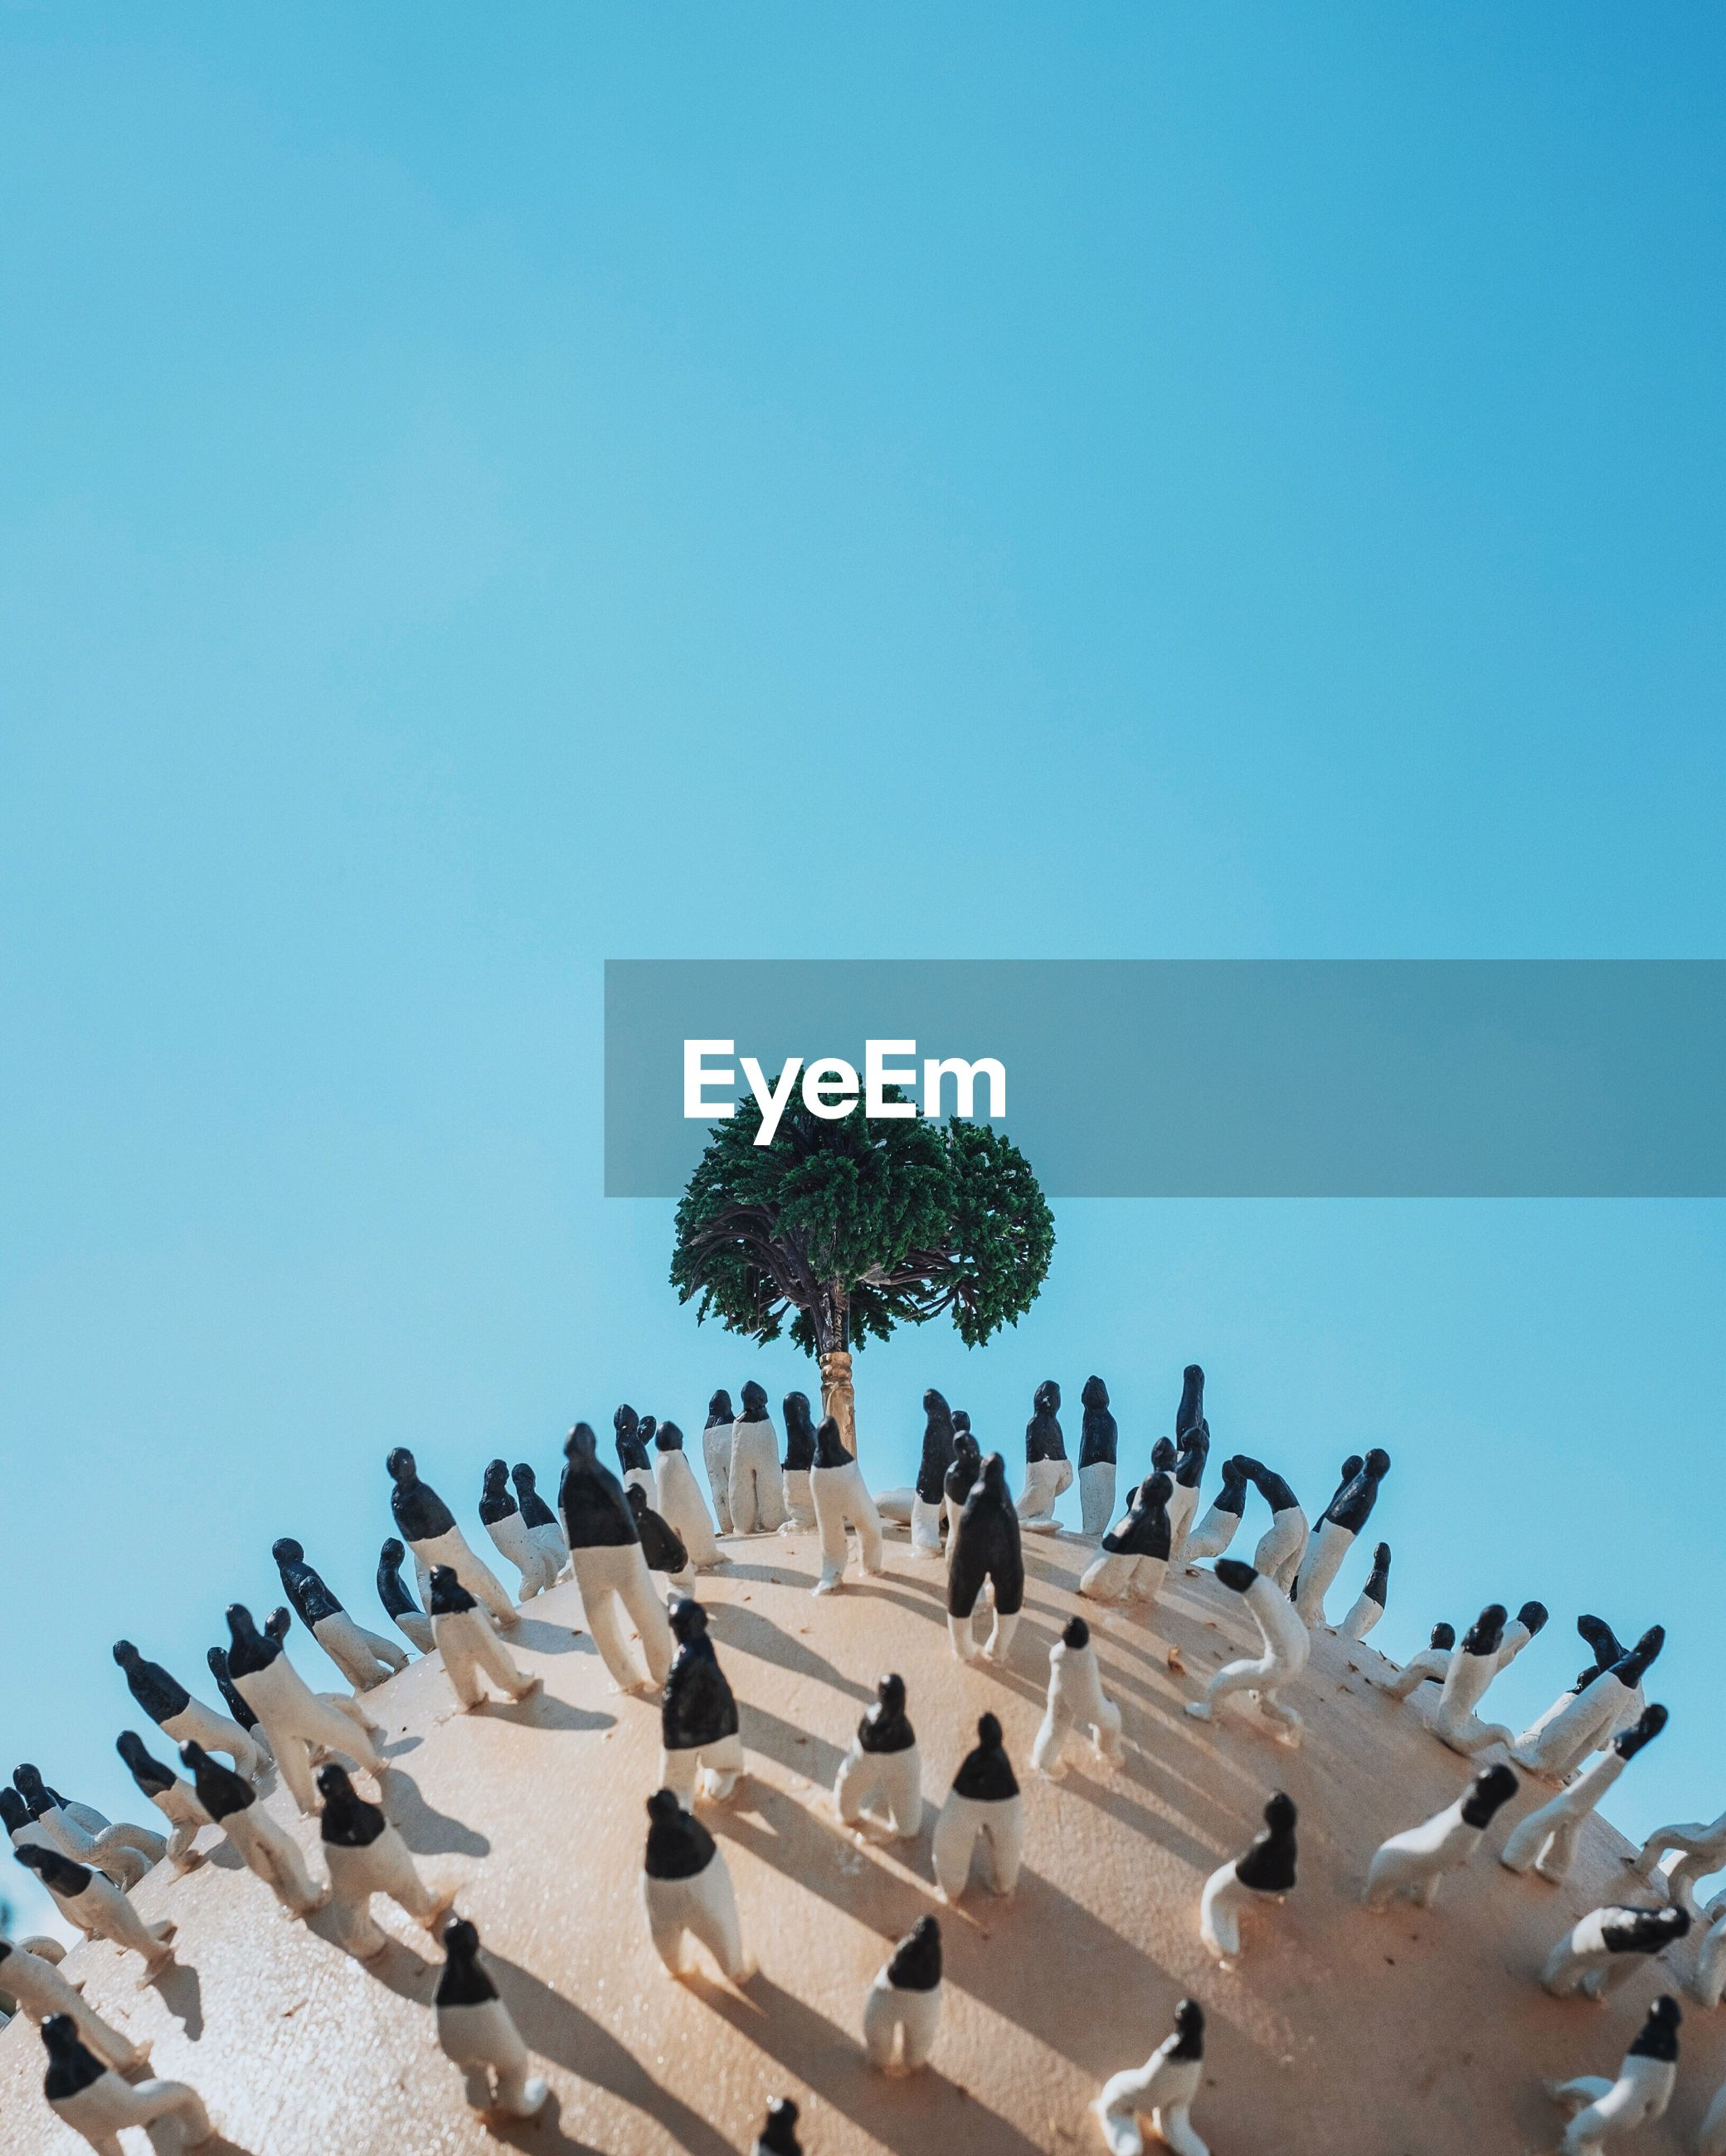 Artificial tree surrounded by figurines against clear blue sky